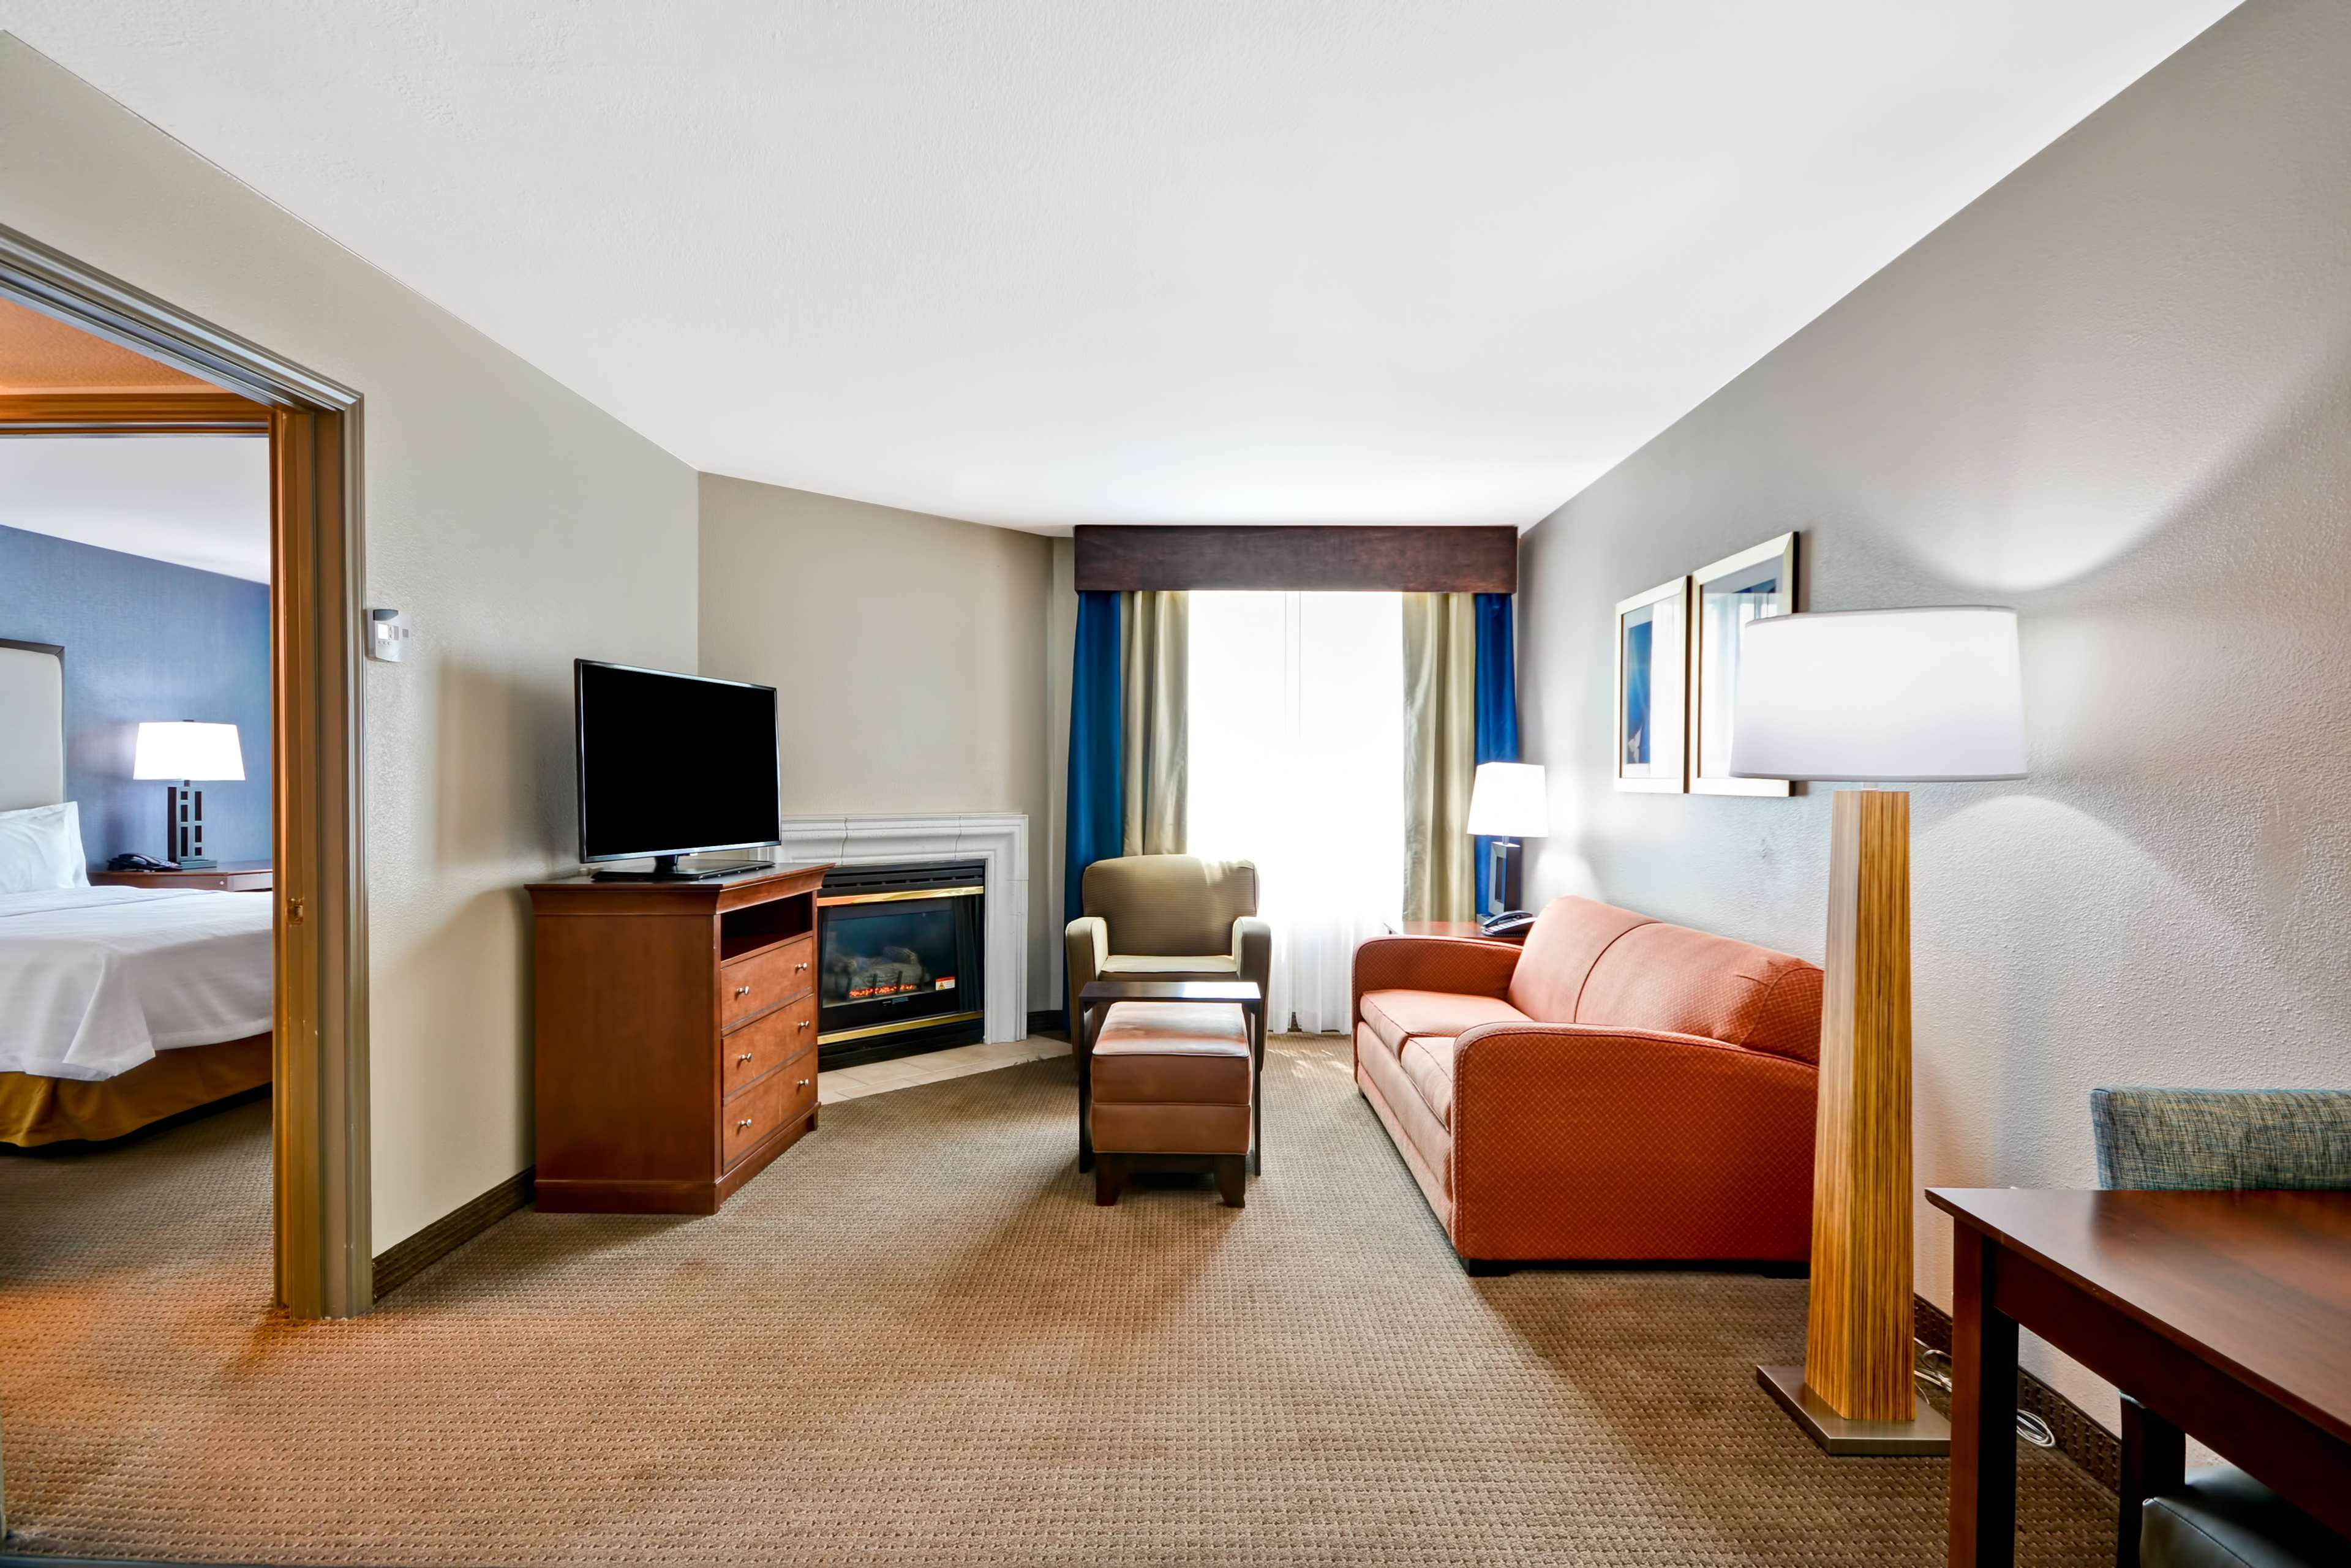 Homewood Suites by Hilton Dallas-Lewisville image 30